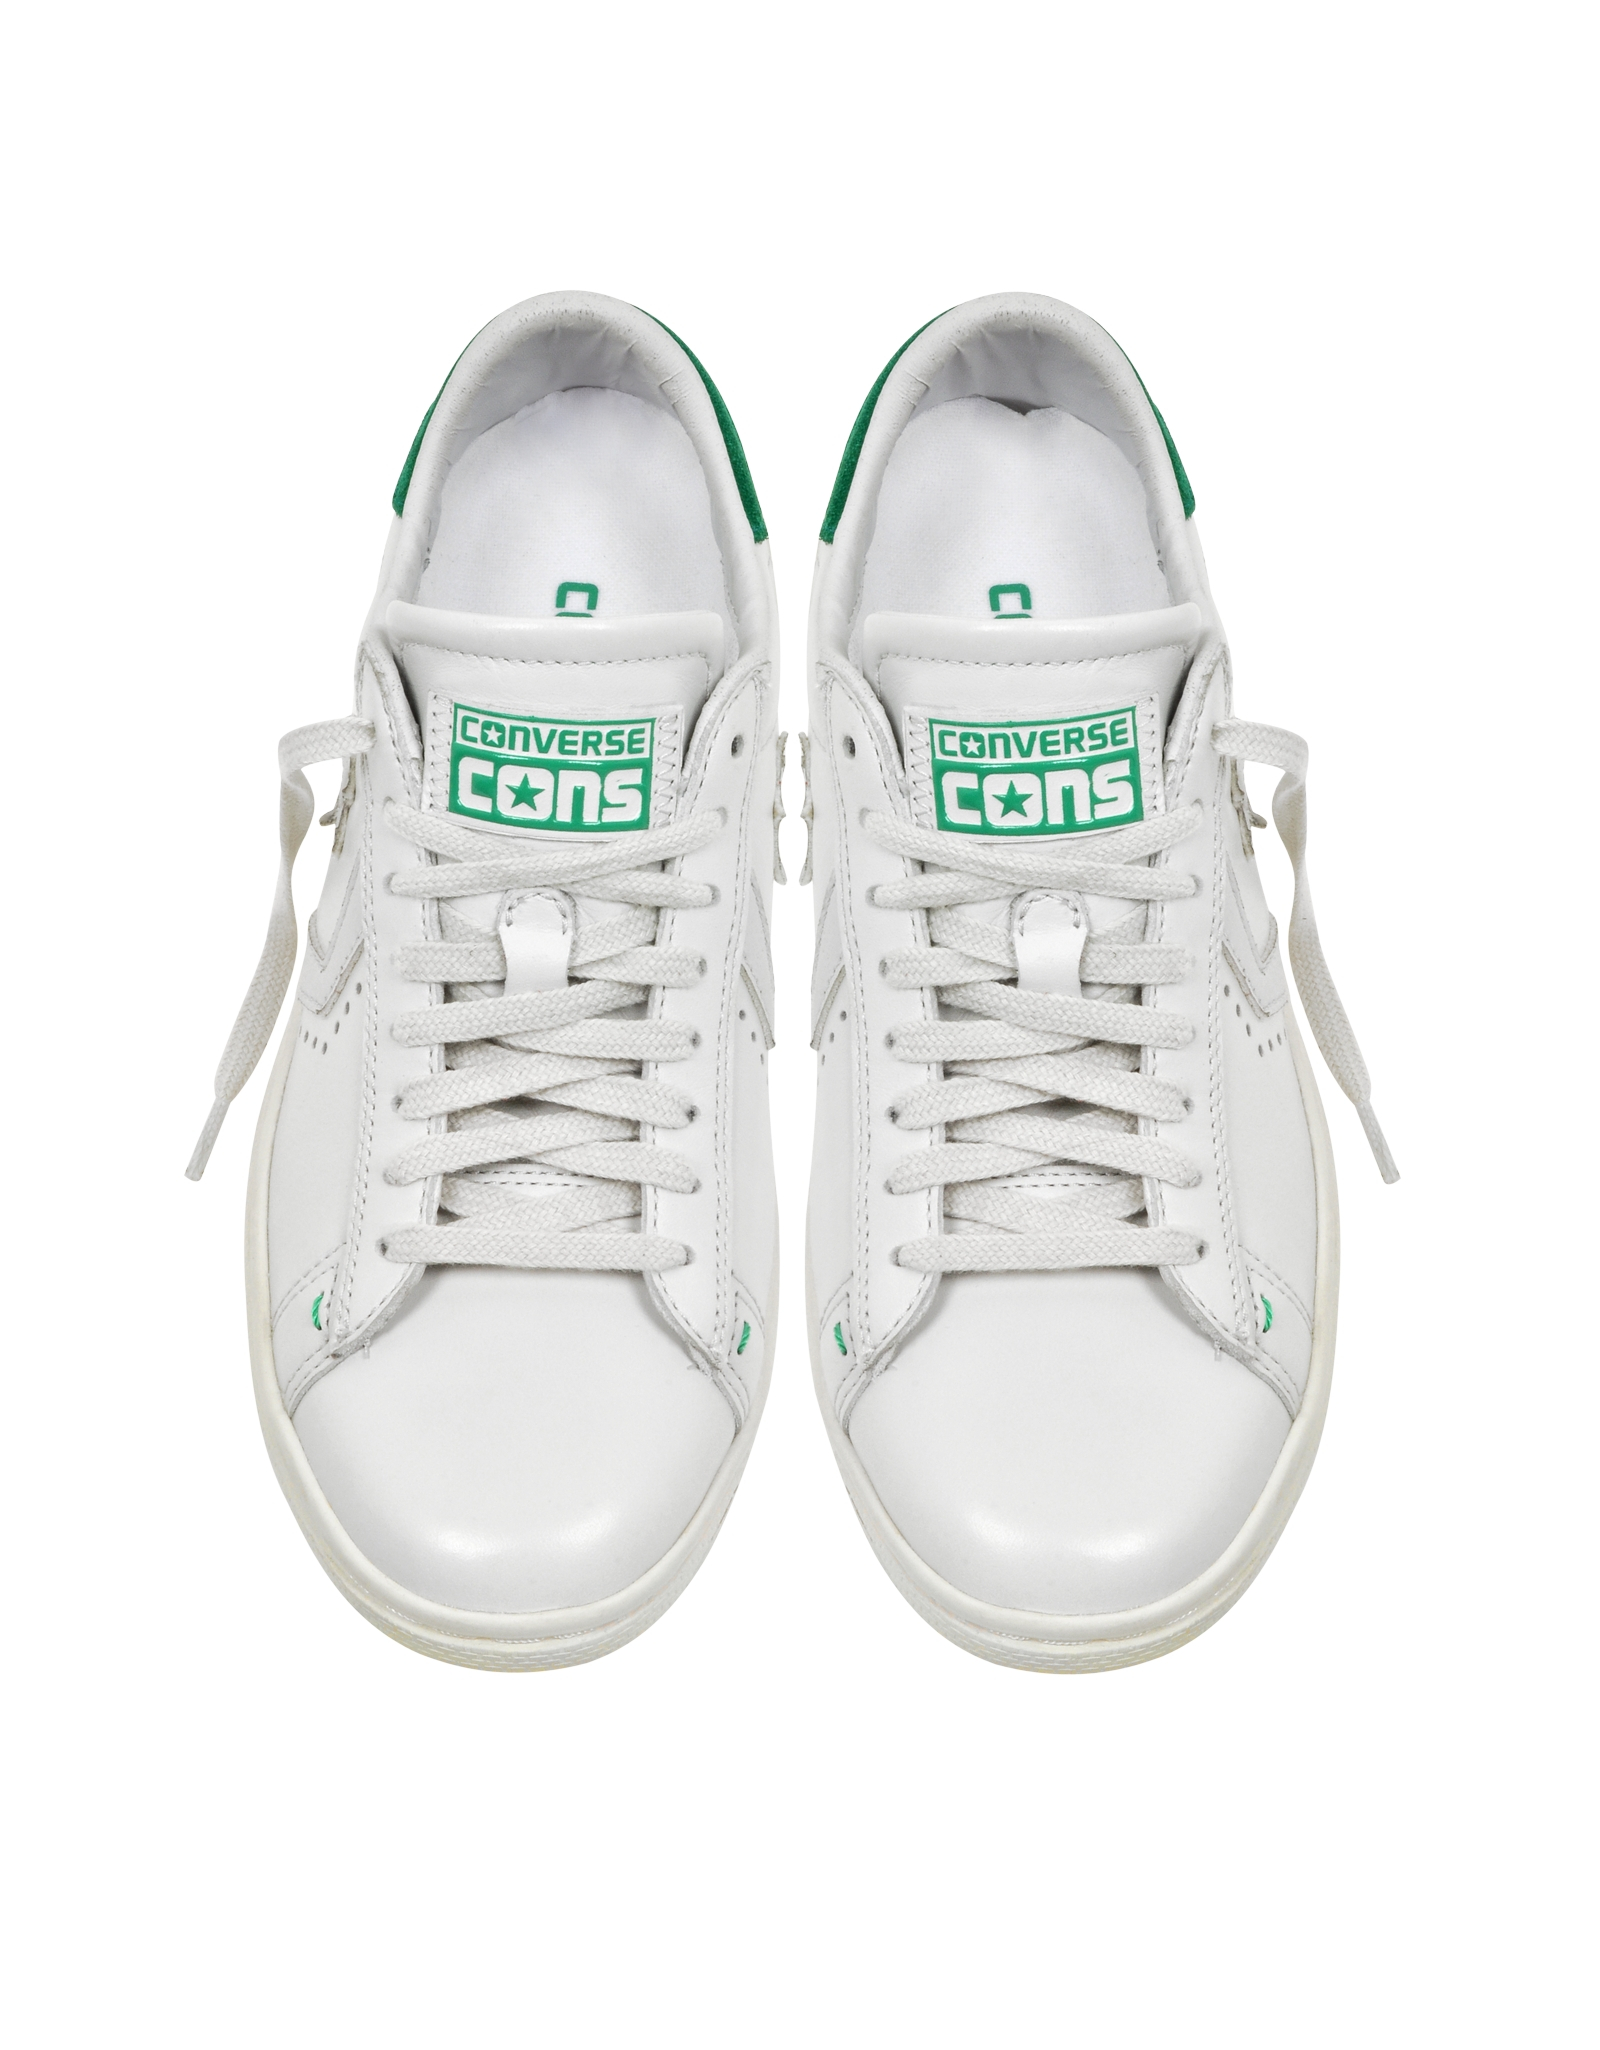 c7922f84c599 Lyst - Converse Cons Pro Leather Lp Ox White Dust And Green Sneaker ...